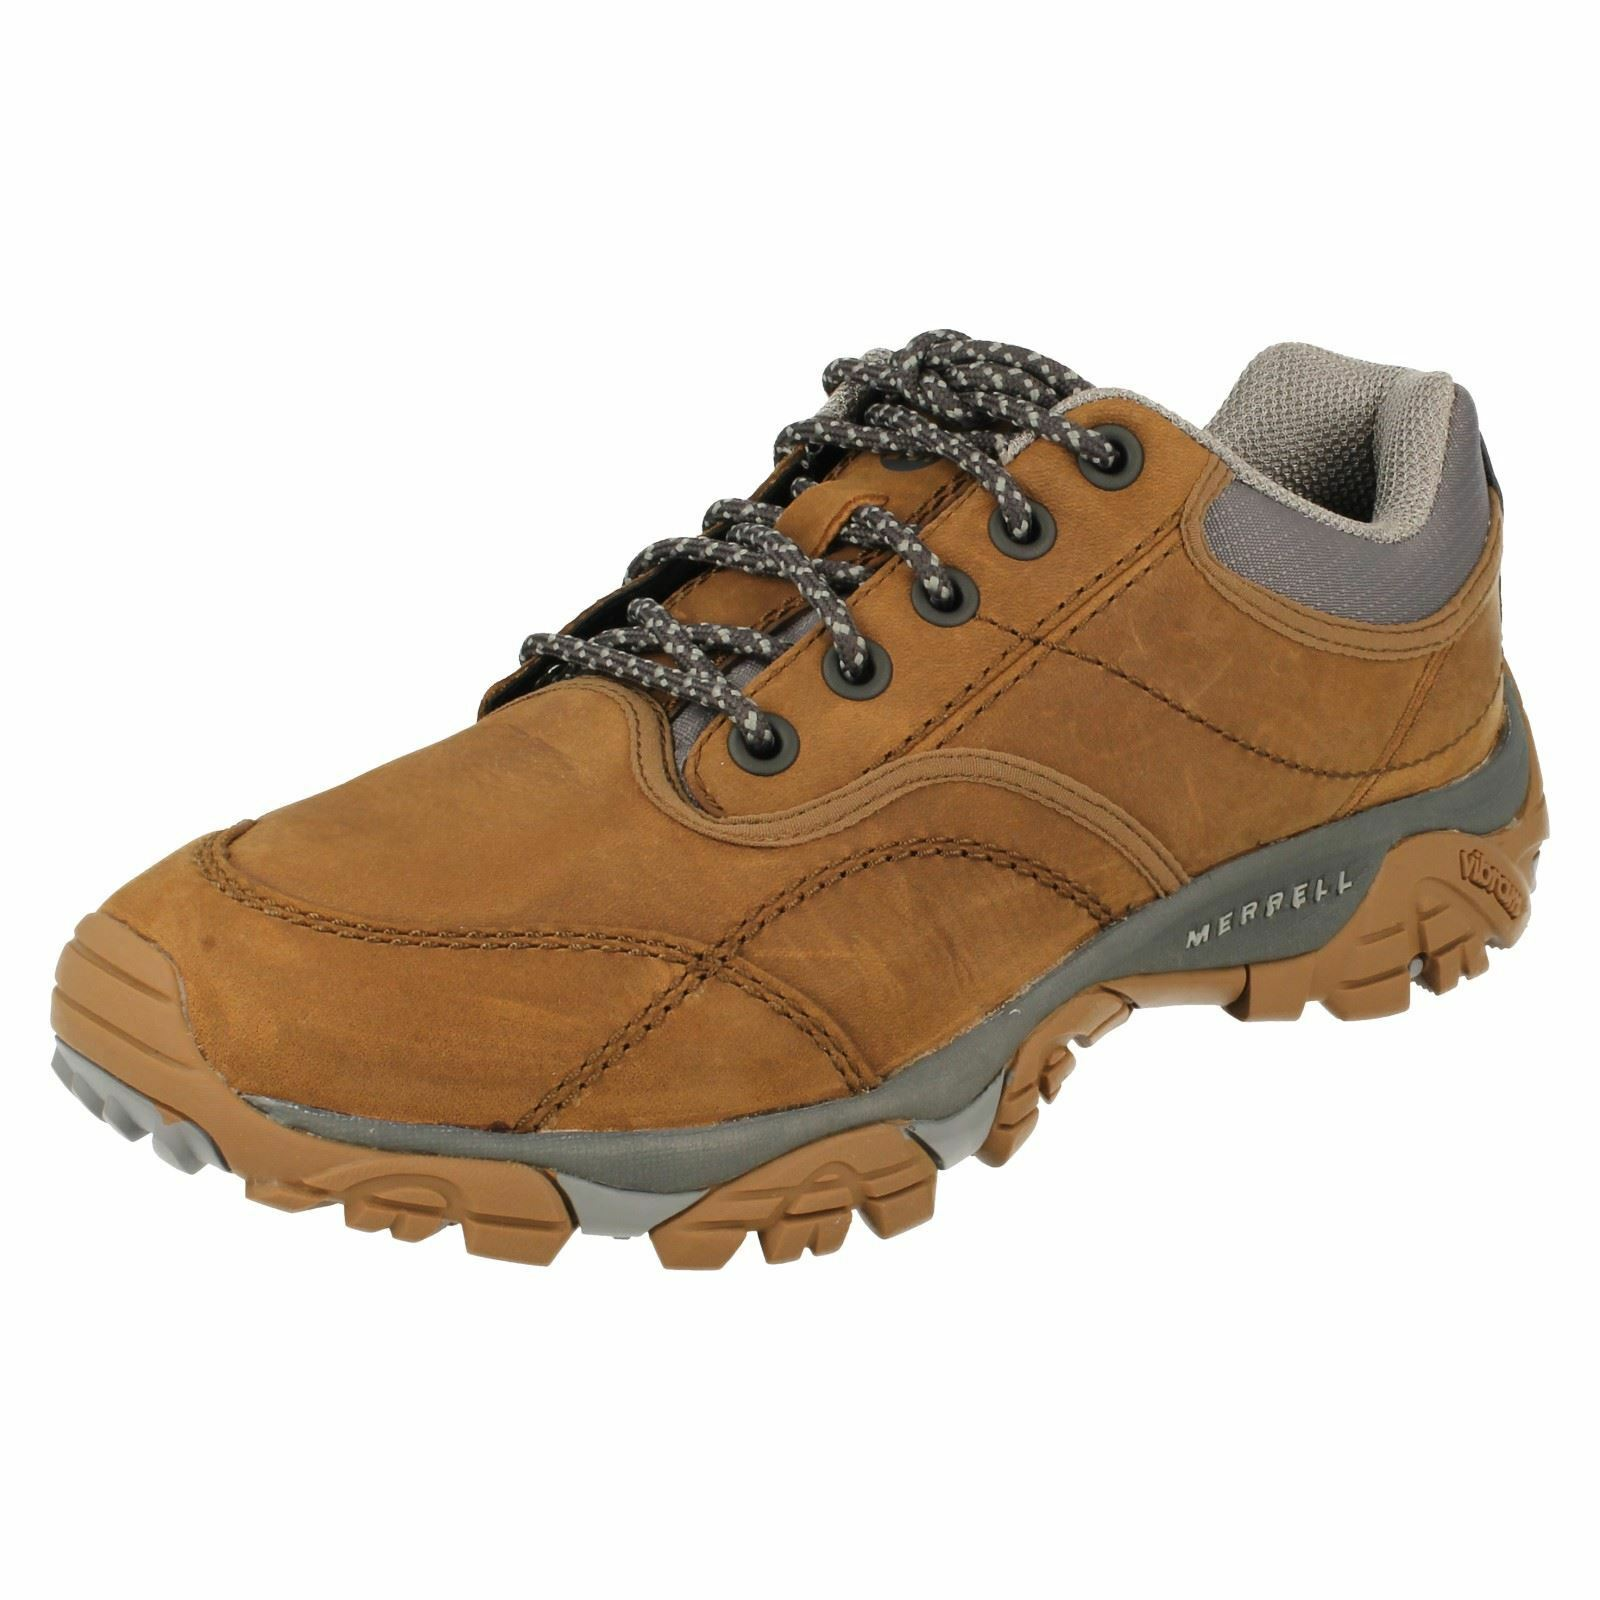 Merrell 'Moab Rover' Mens Tan Lace Up Leather Hiking shoes, Trainers